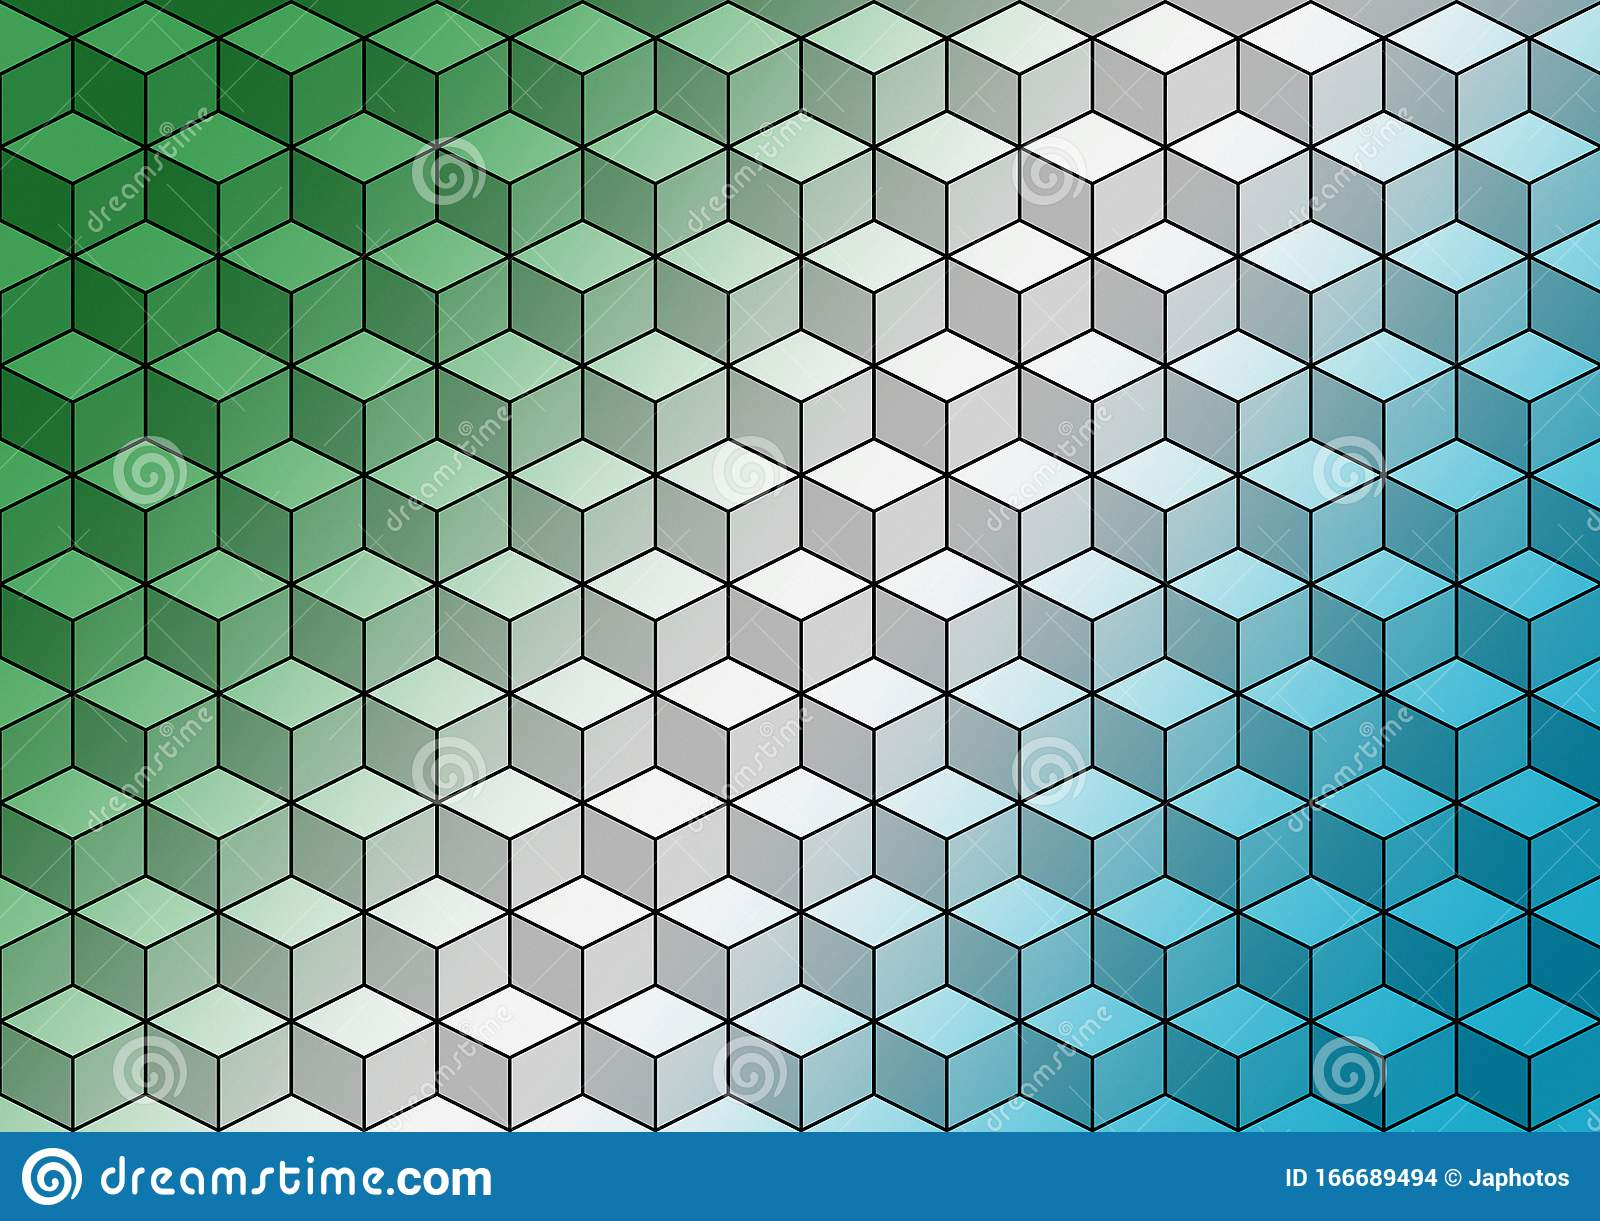 Green White Blue Geometric Cubes Colorful Abstract Wallpaper